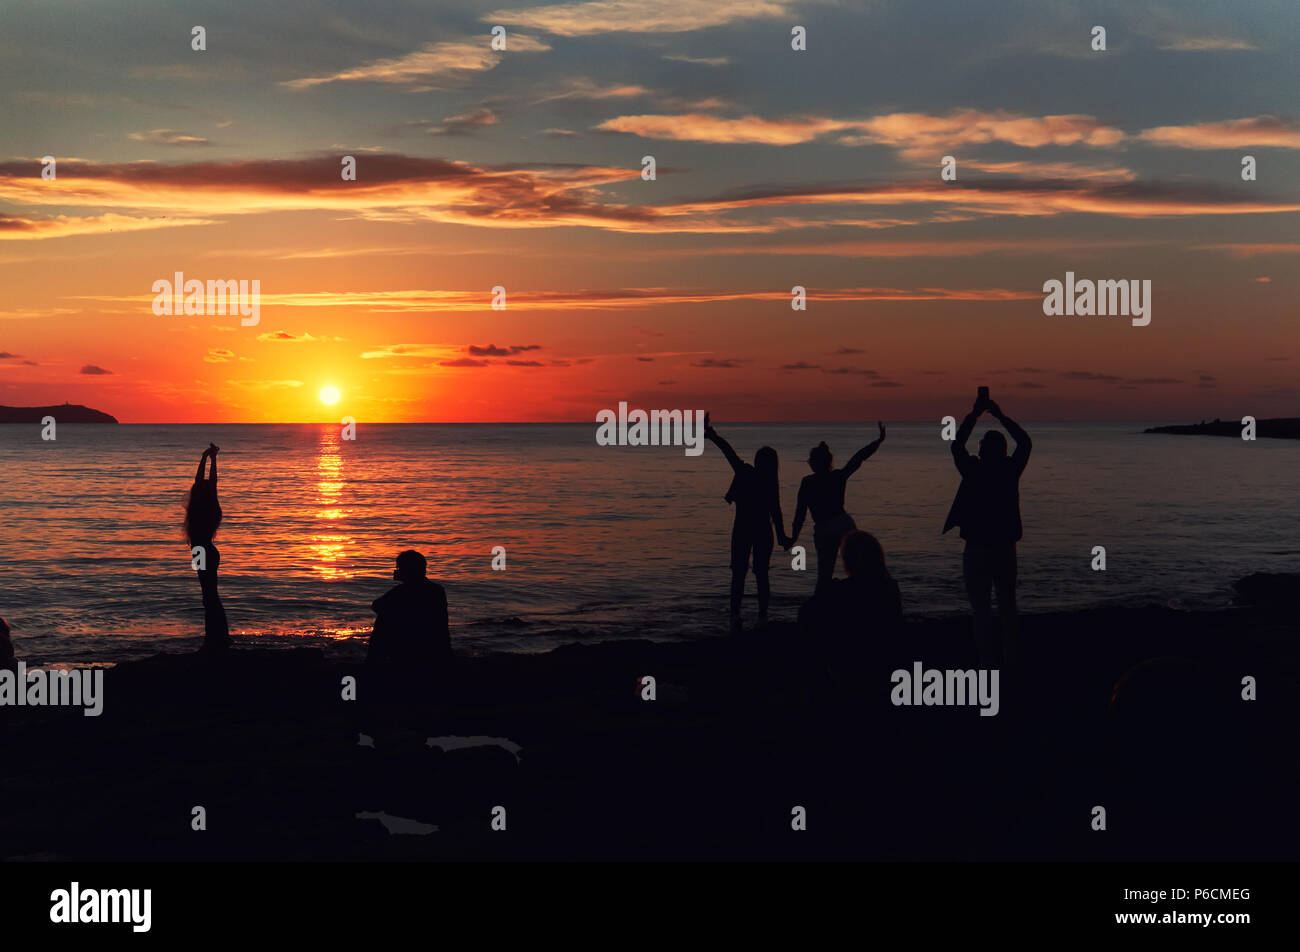 Silhouette of a people during the sunset at Cafe Del Mar. Ibiza Island. Balearic Islands. Spain - Stock Image